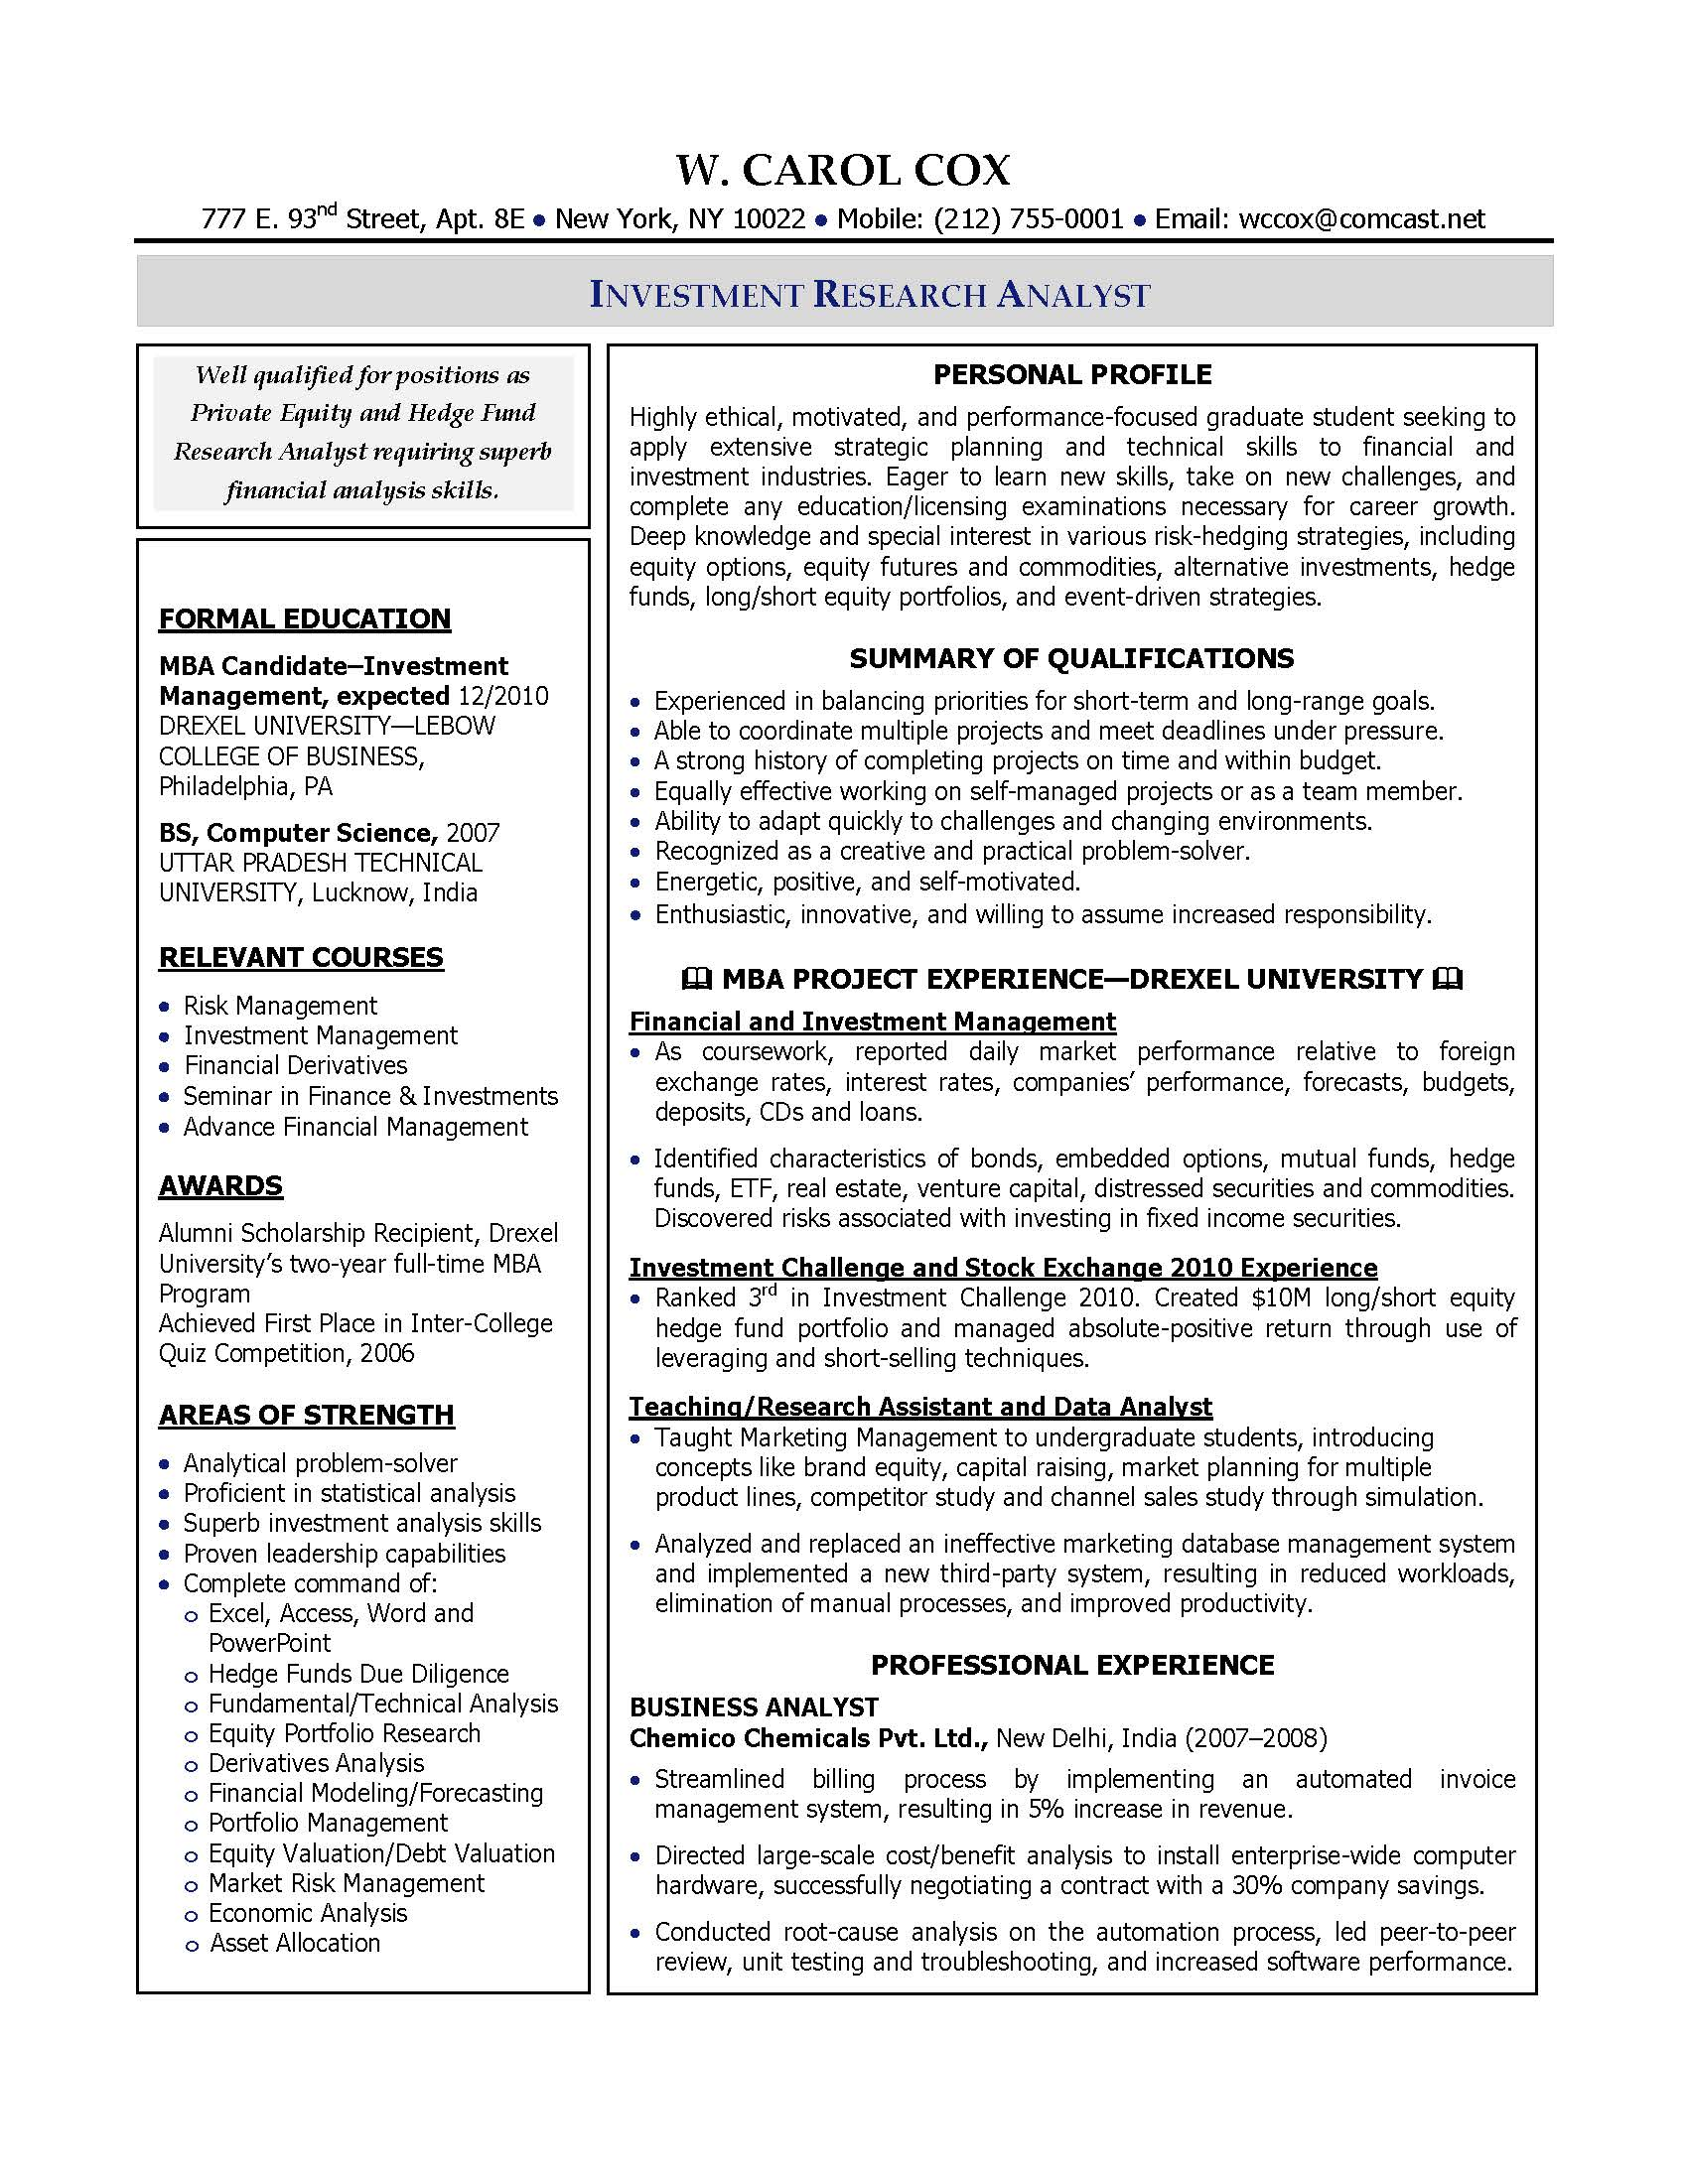 investment research analyst financial investment associate resume sample. Resume Example. Resume CV Cover Letter